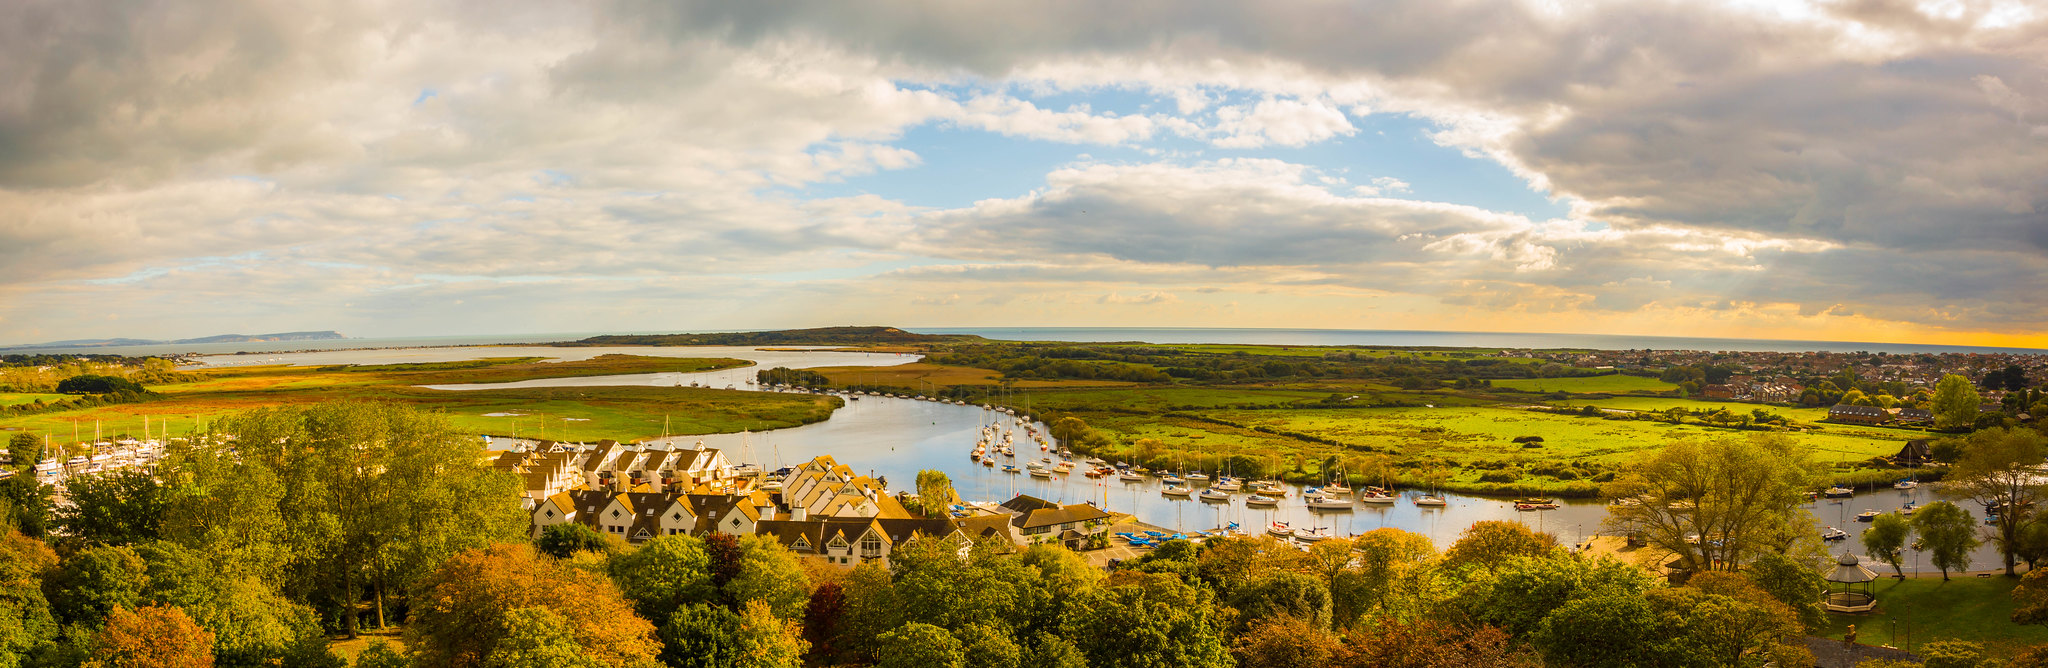 Christchurch Harbour | The Stour Valley Way